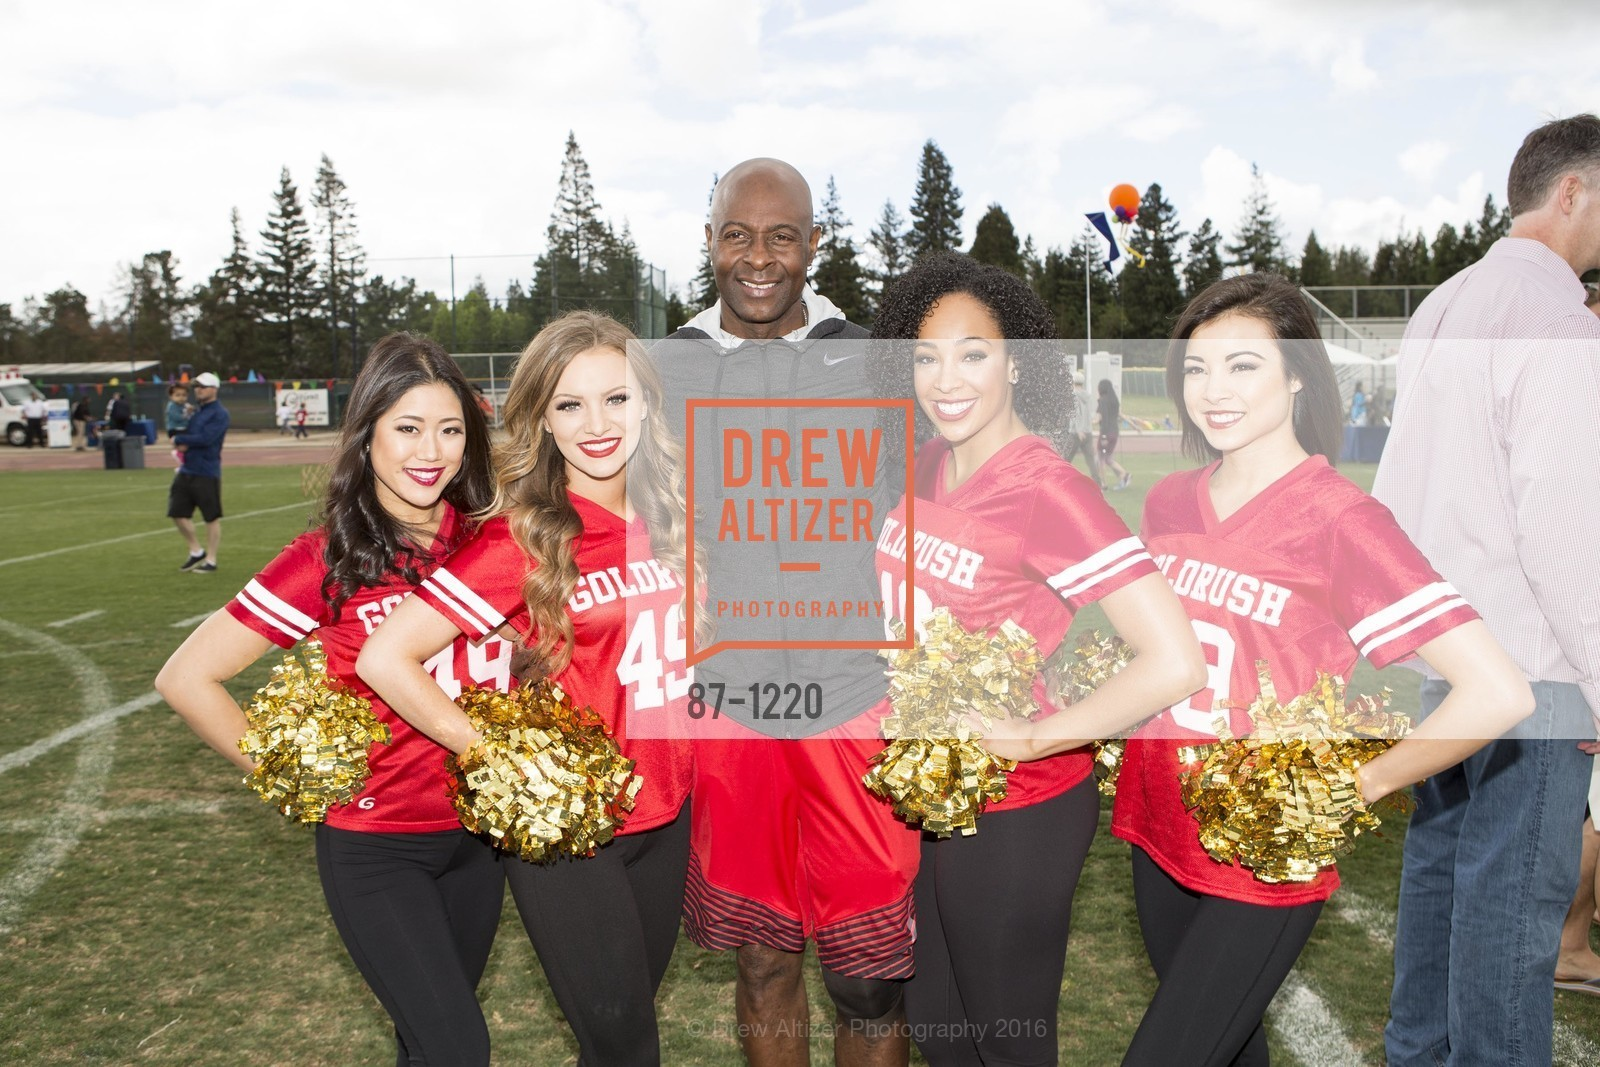 Jerry Rice, The Gold Rush Girls, Photo #87-1220